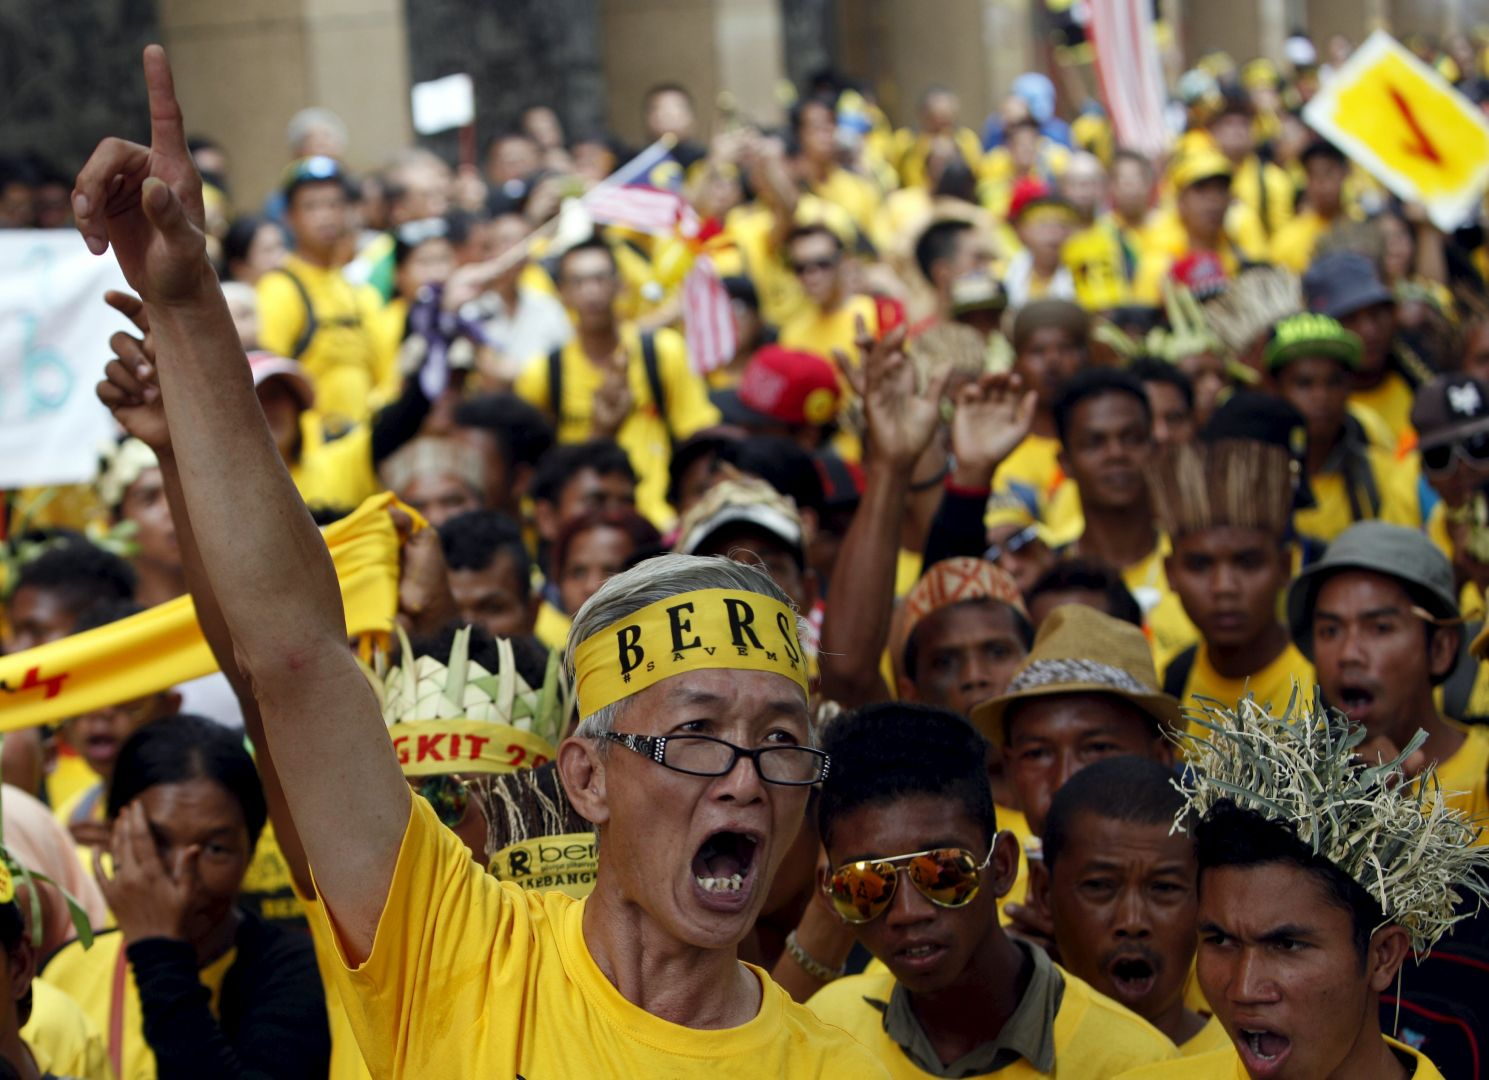 The Bersih rallies became a symbol of the people's fight for a better democracy. The widespread support for the organisation and its rallies is an example of active political participation.